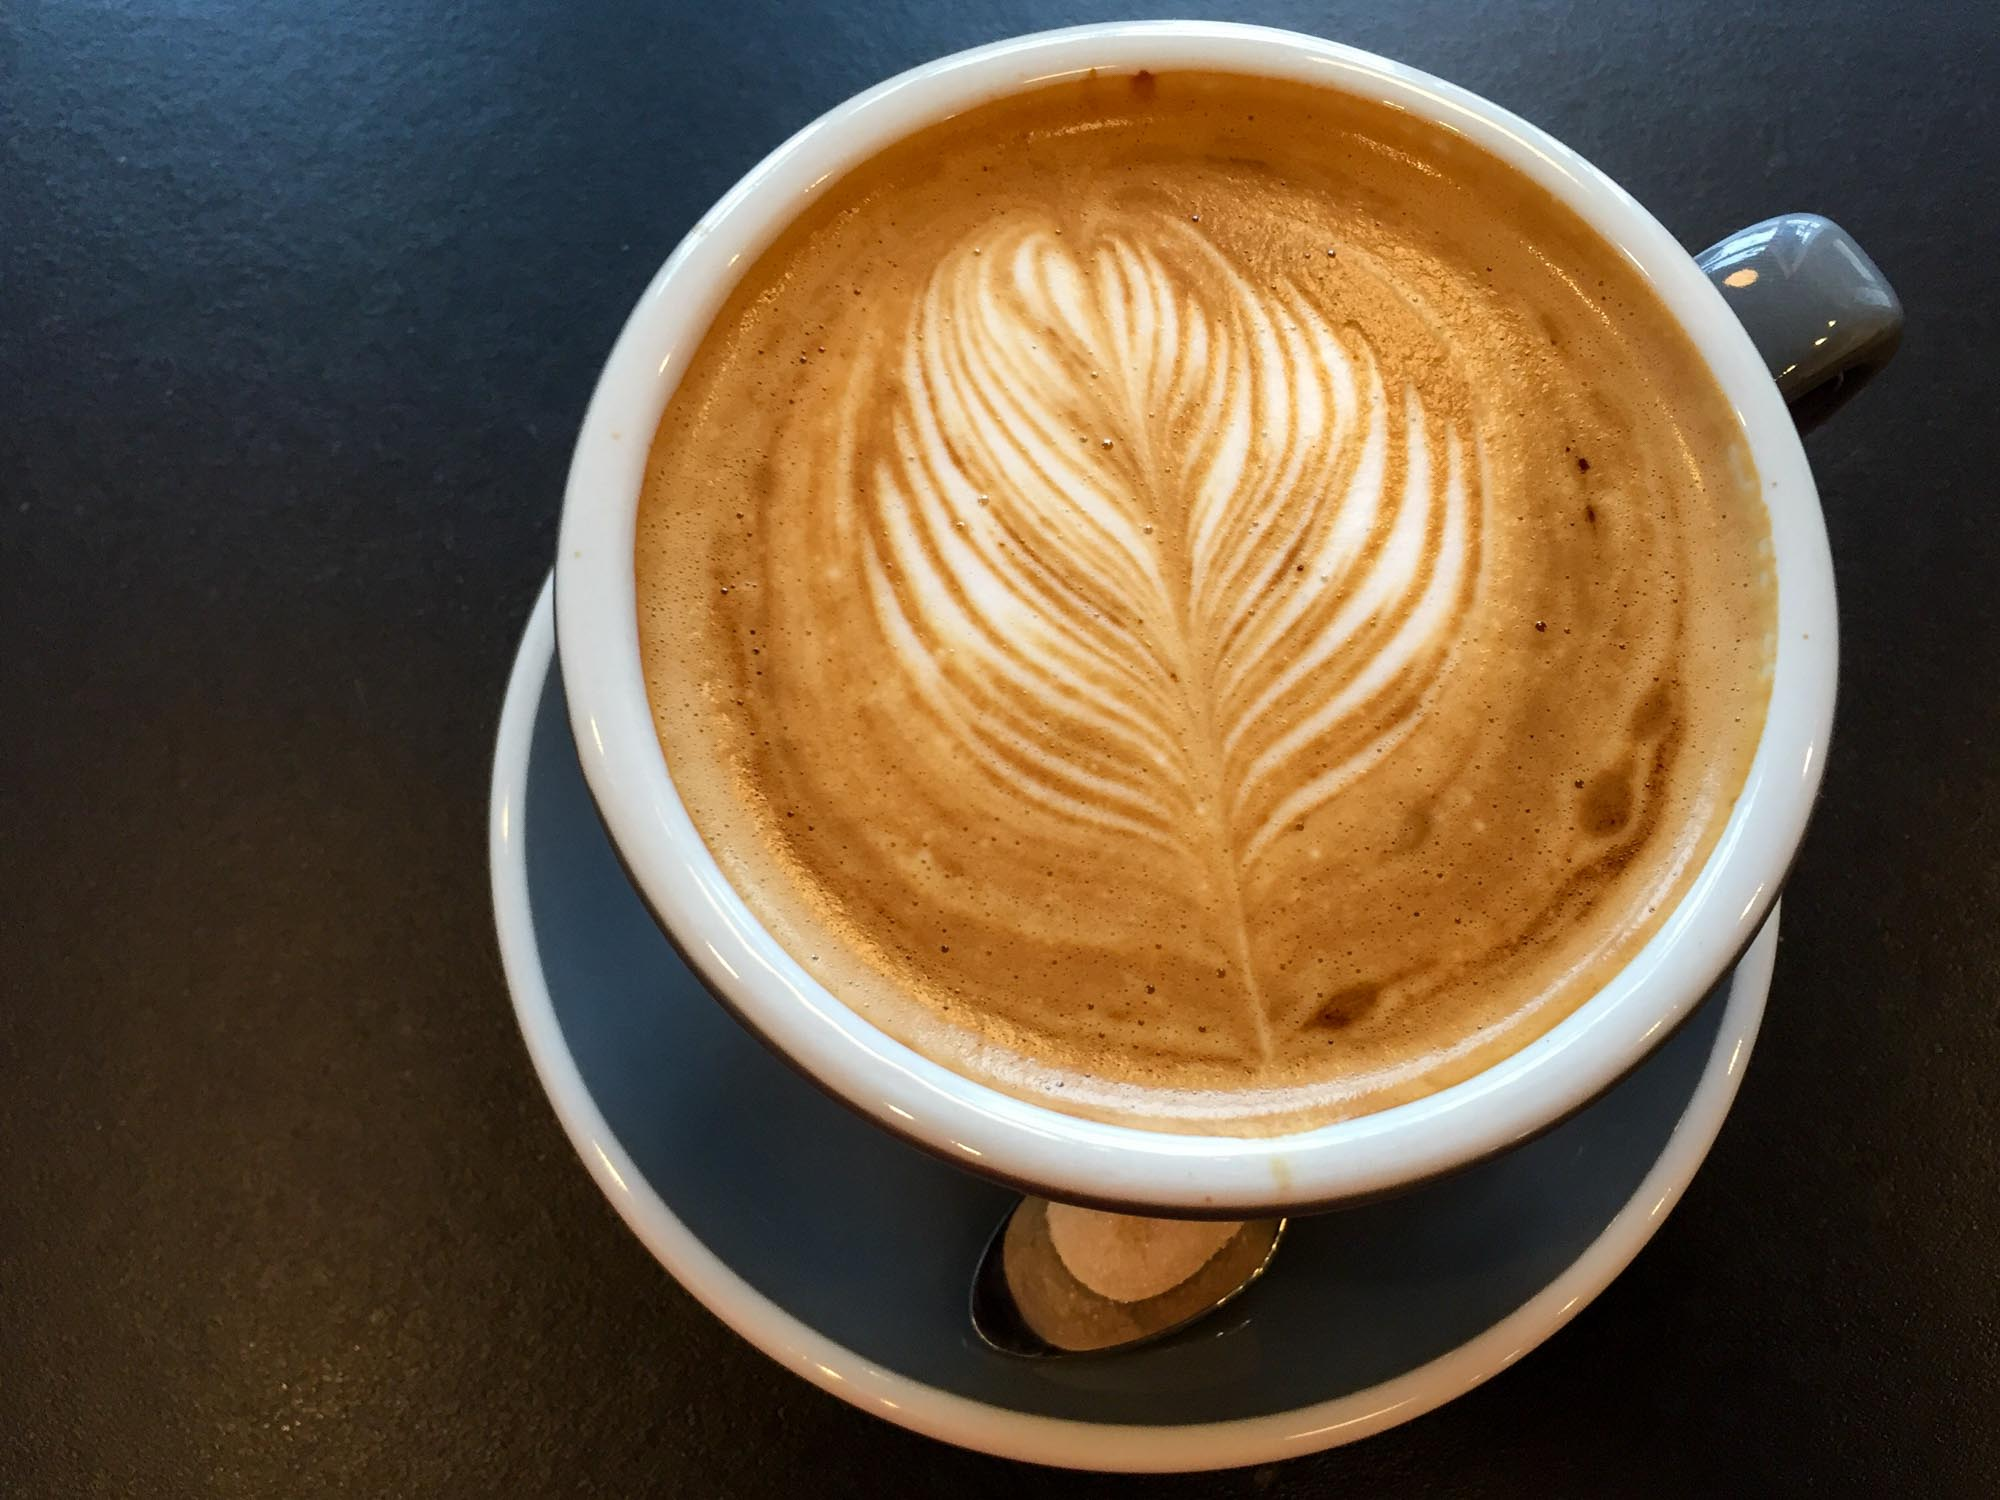 Get Your Caffeine Fix at 14 of the Best Coffee Shops in Cleveland